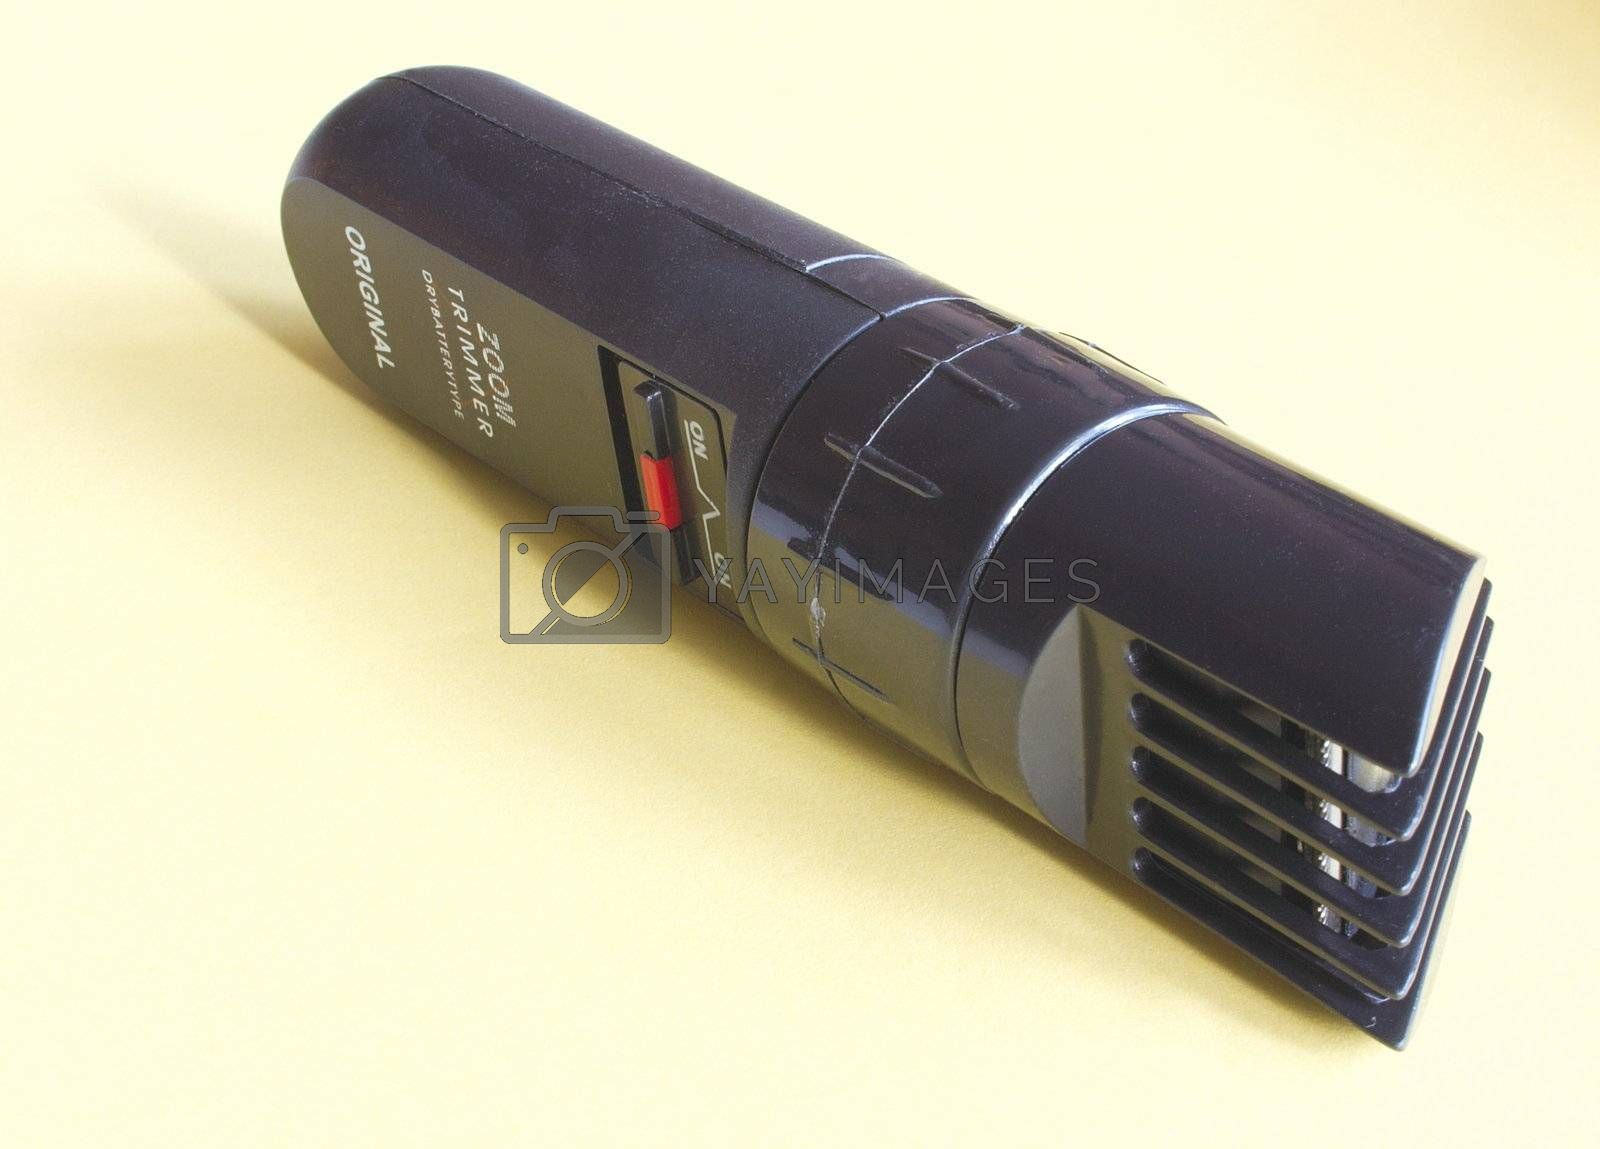 a cutting blades of a beard trimmer